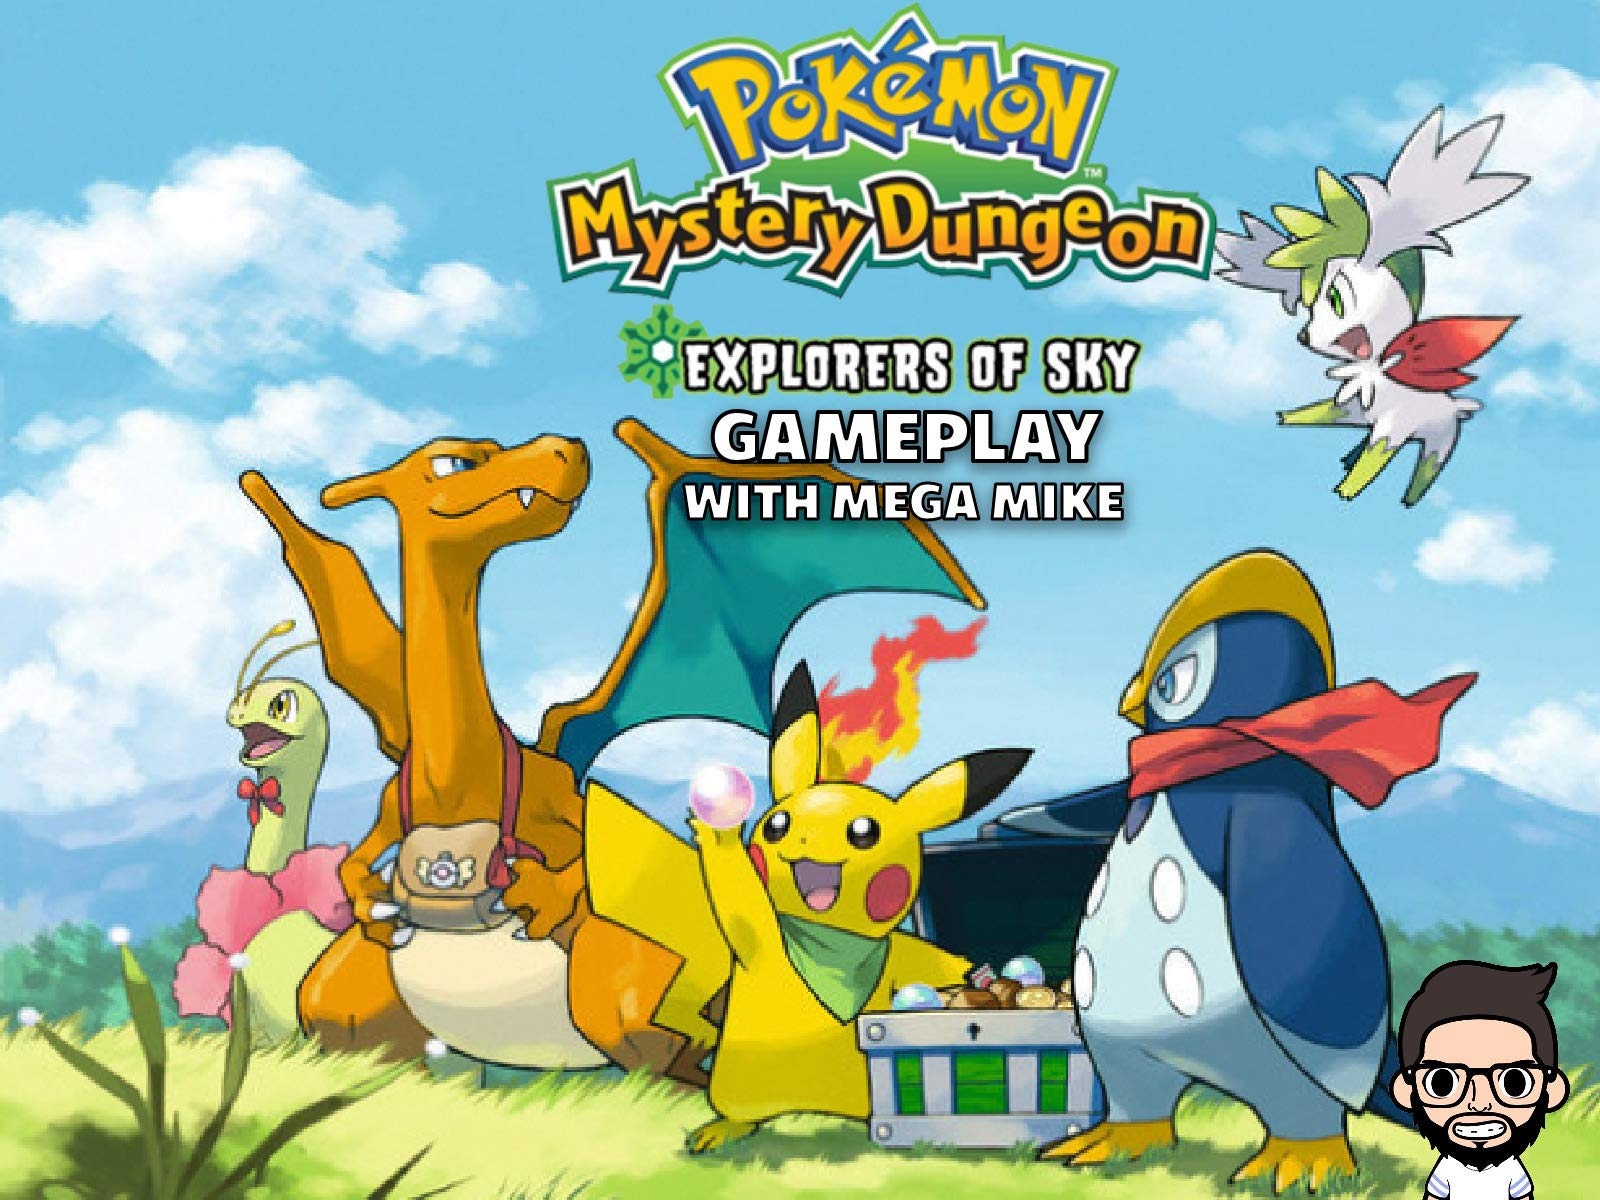 Pokemon Mystery Dungeon Explorers Of Sky Gameplay With Mega Mike on Amazon Prime Instant Video UK